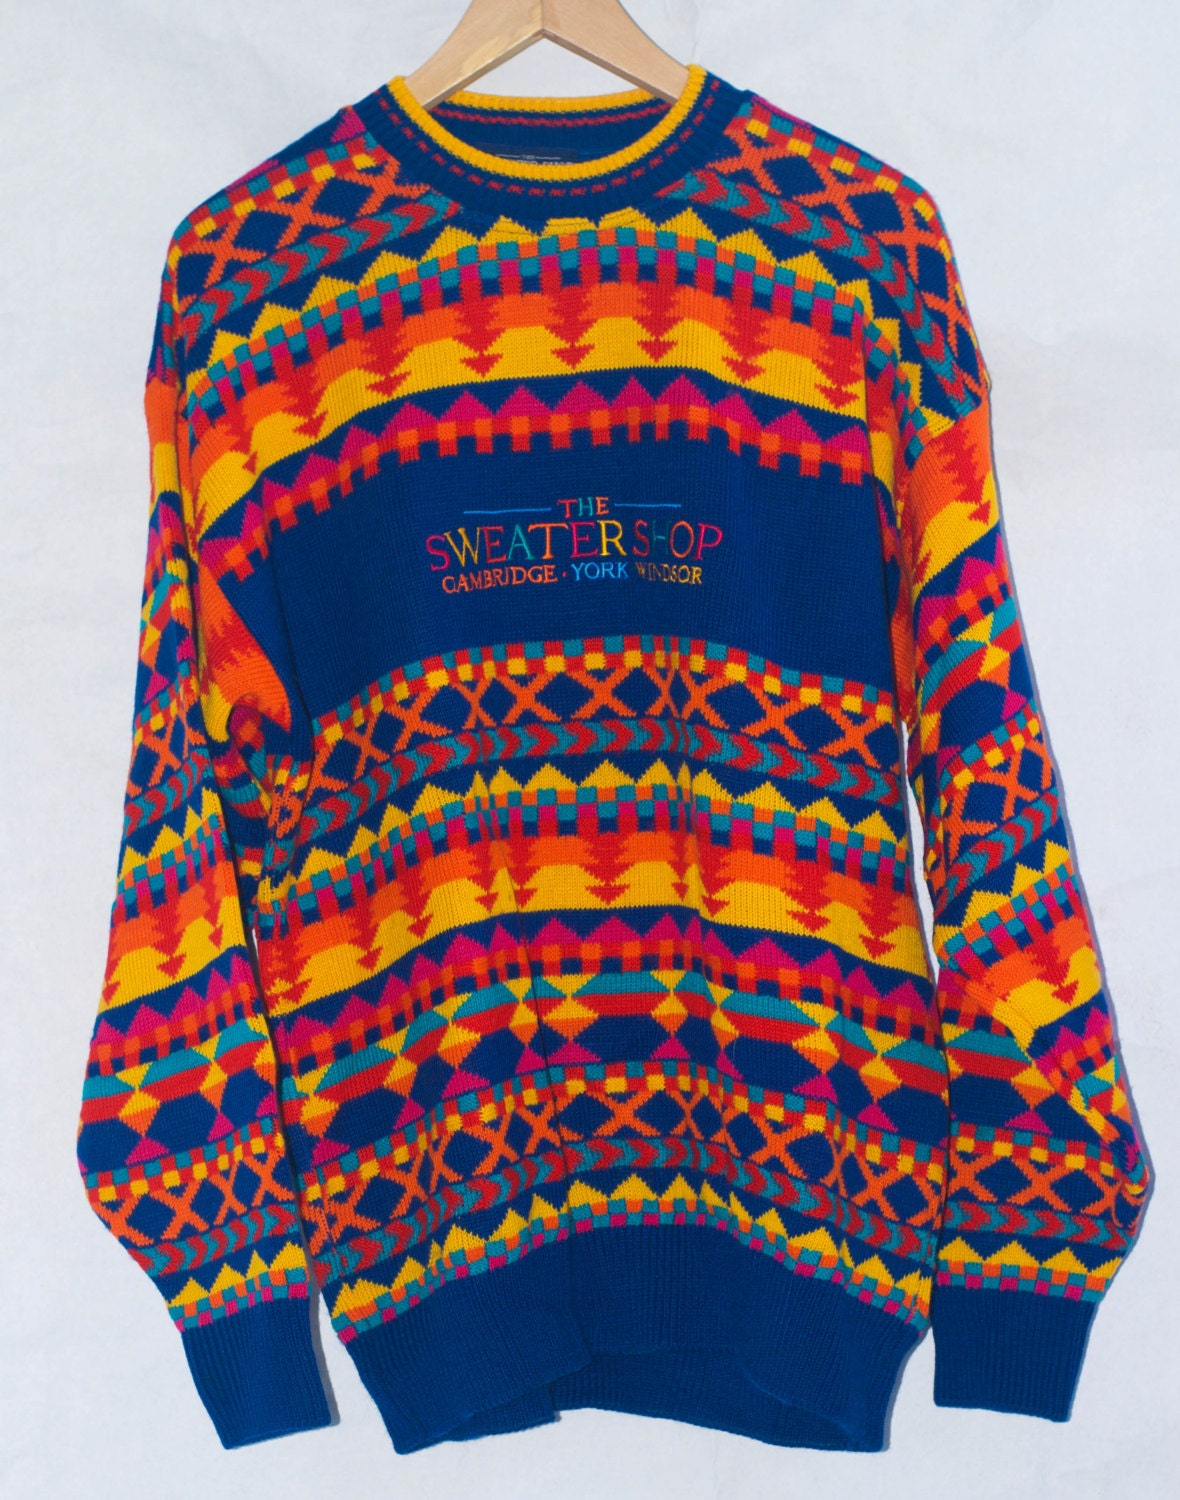 Vintage 90's The Sweater Shop Jumper/ Sweater. Made in